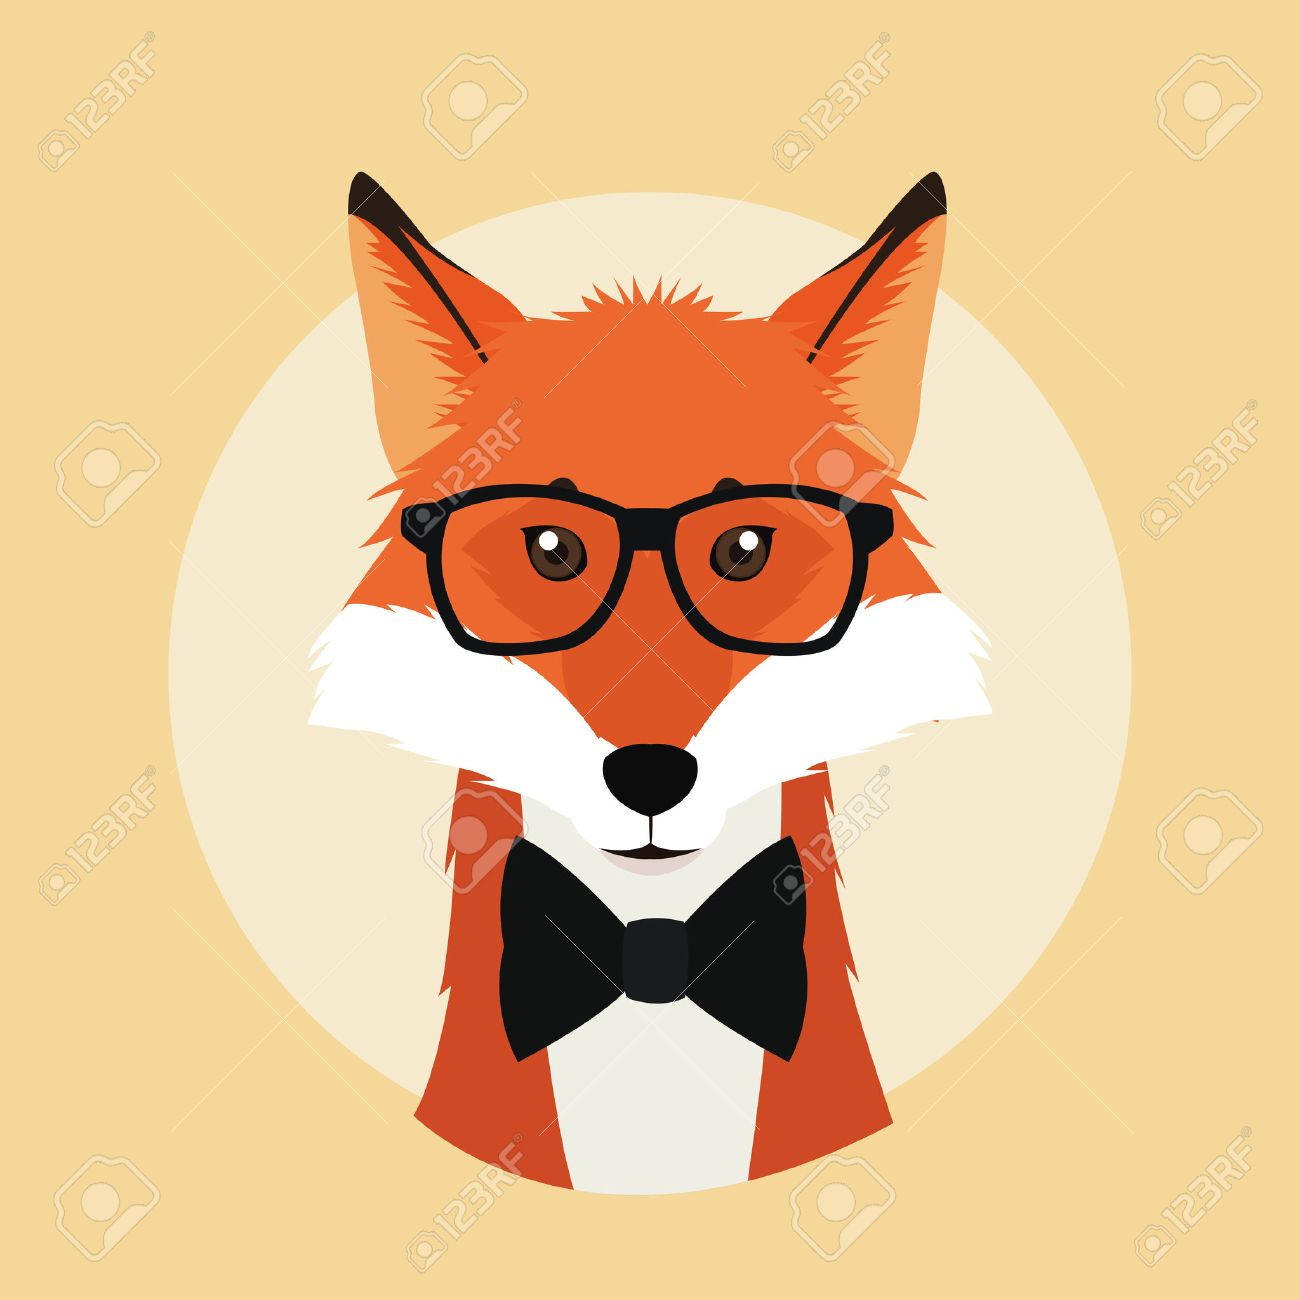 fox glasses animal hipster style retro fashion icon, Vector illustration Stock Vector - 61379551